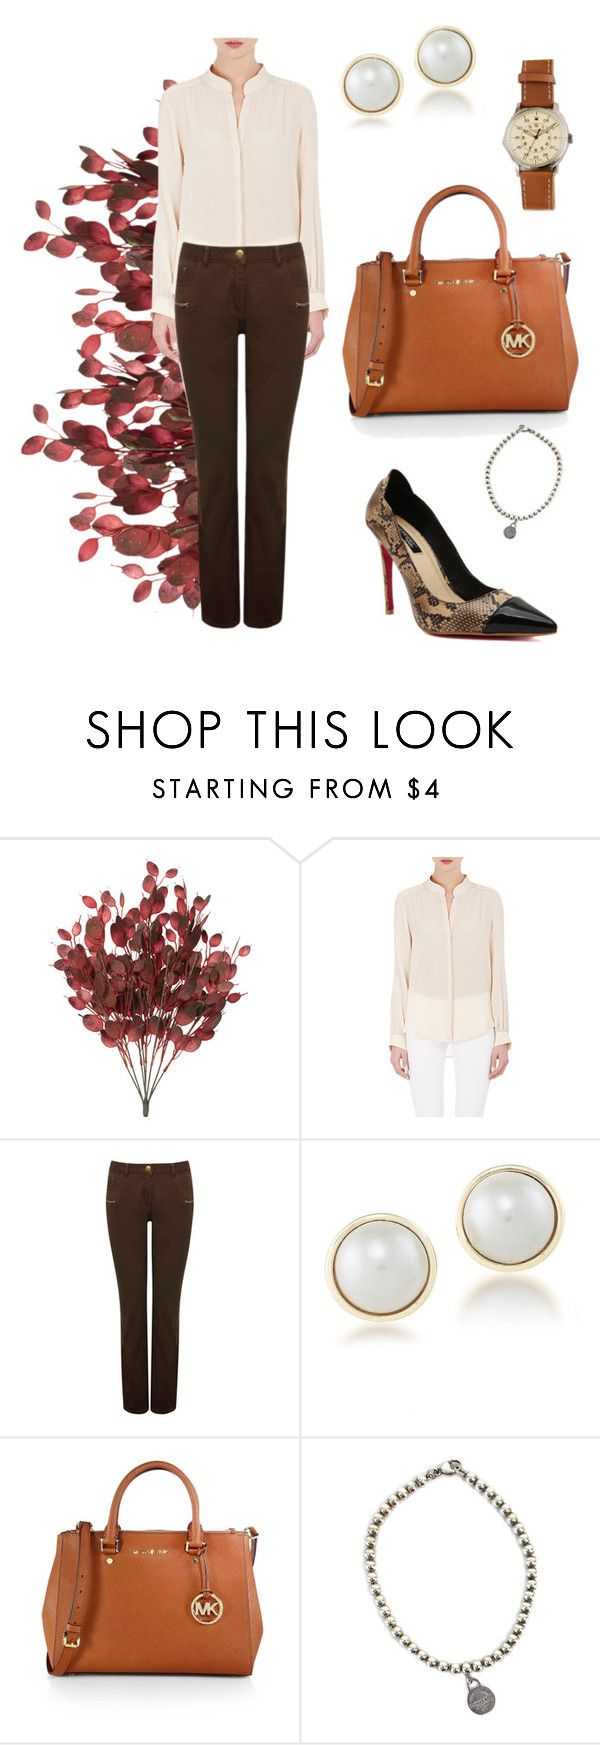 """Marroon elegance"" by marijime on Polyvore featuring moda, L'Agence, M&Co, Carolee, MICHAEL Michael Kors, Tiffany & Co., J.Crew, WorkWear, Spring y outfit"